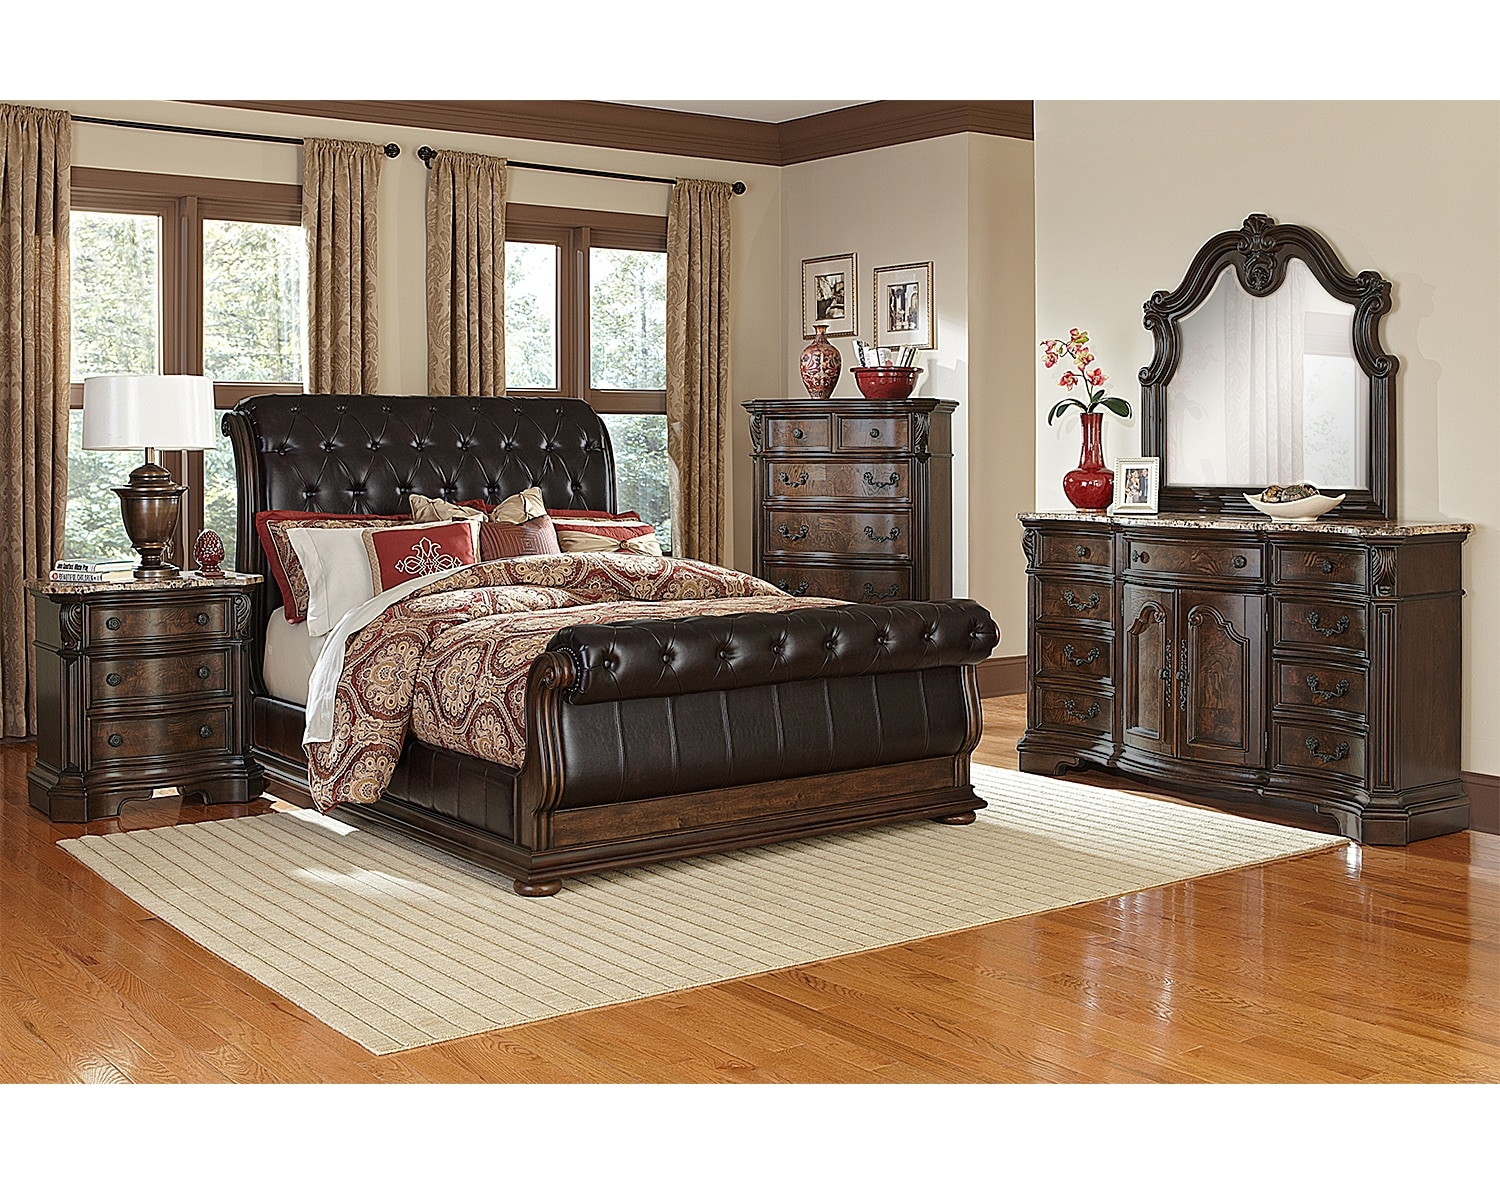 american signature bedroom sets the monticello sleigh bedroom collection pecan 14015